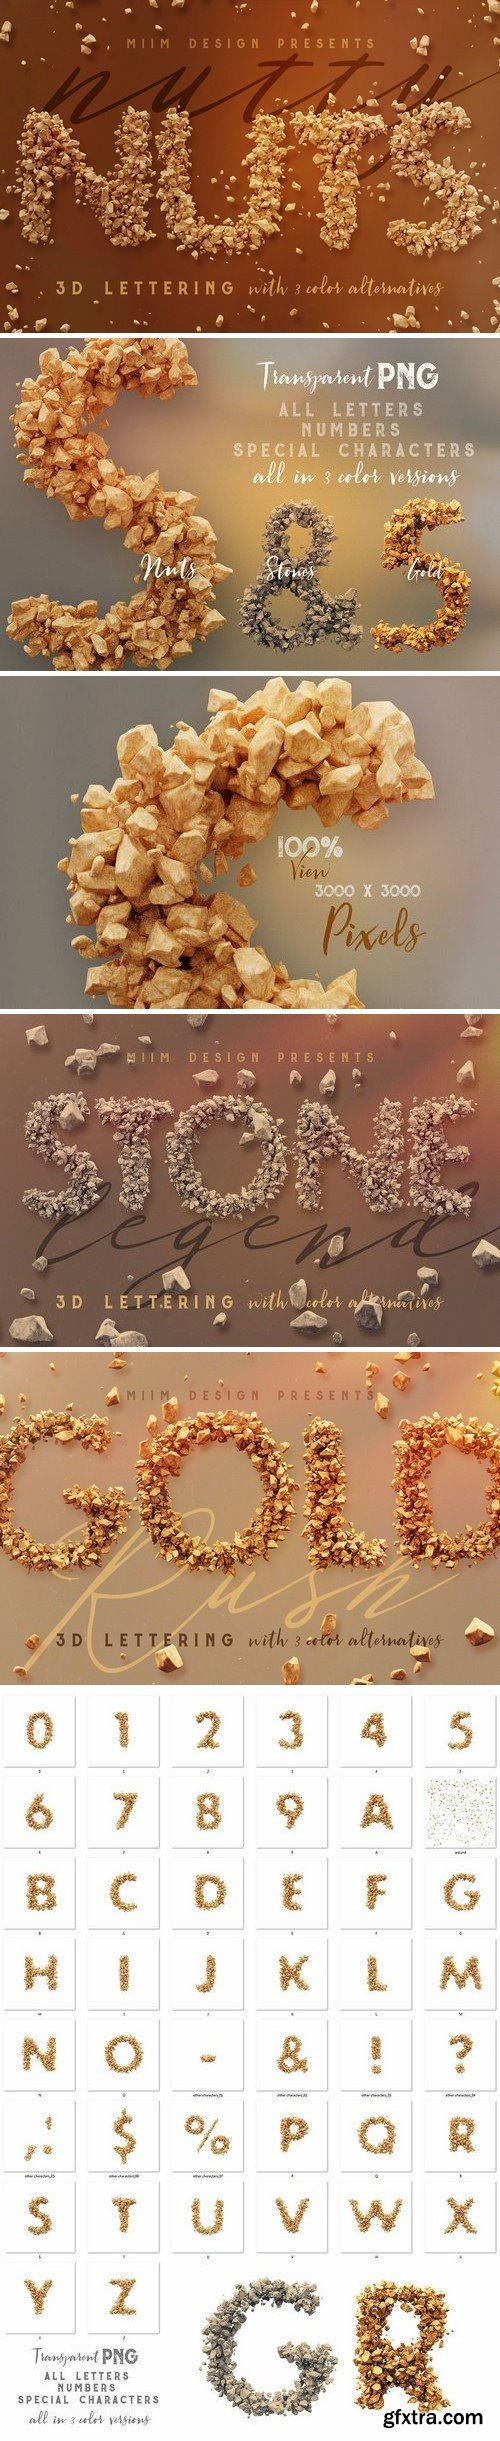 CM - Nutty Nuts - 3D Lettering 2196013